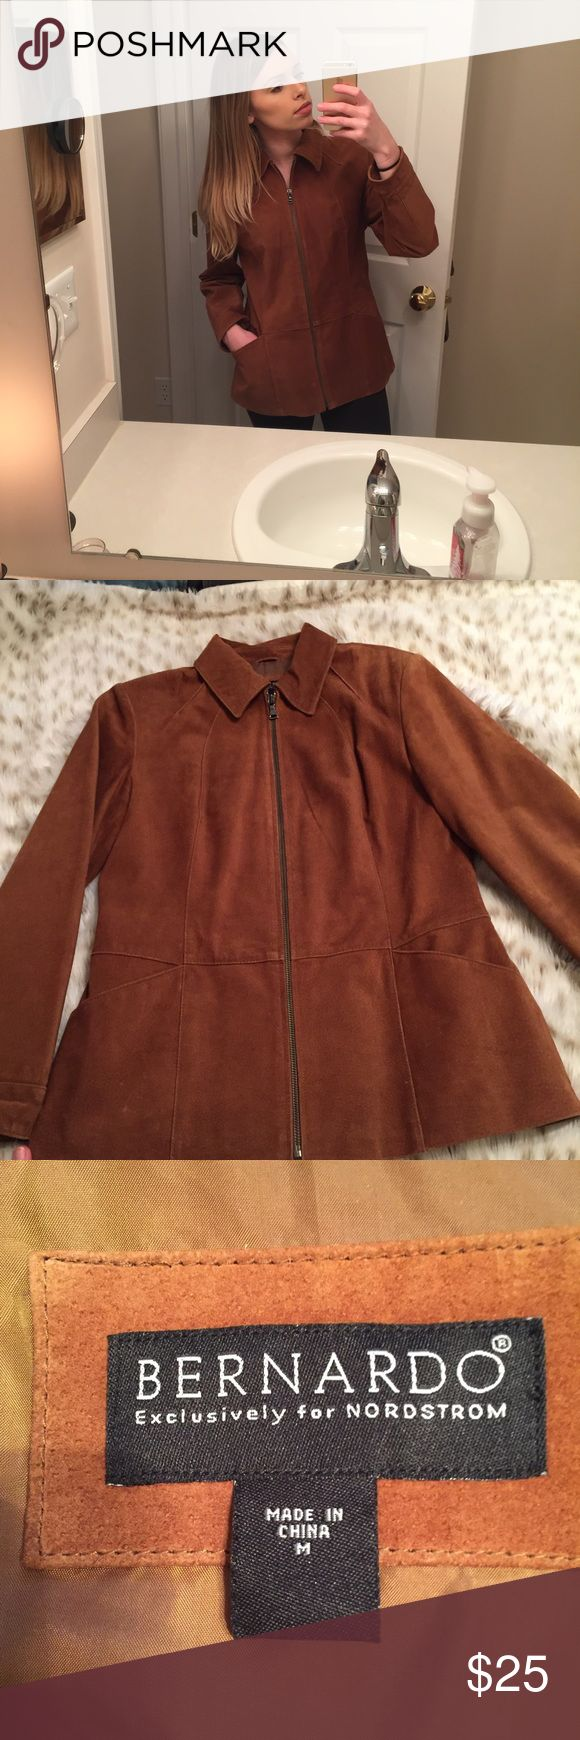 Bernardo Nordstrom Leather Suede Jacket Bernardo for Nordstrom size medium leather jacket! So cute! Used but in very good condition. Full zip. Has 2 pockets in front! Beautiful camel brown color! Make an offer!! Bernardo Jackets & Coats